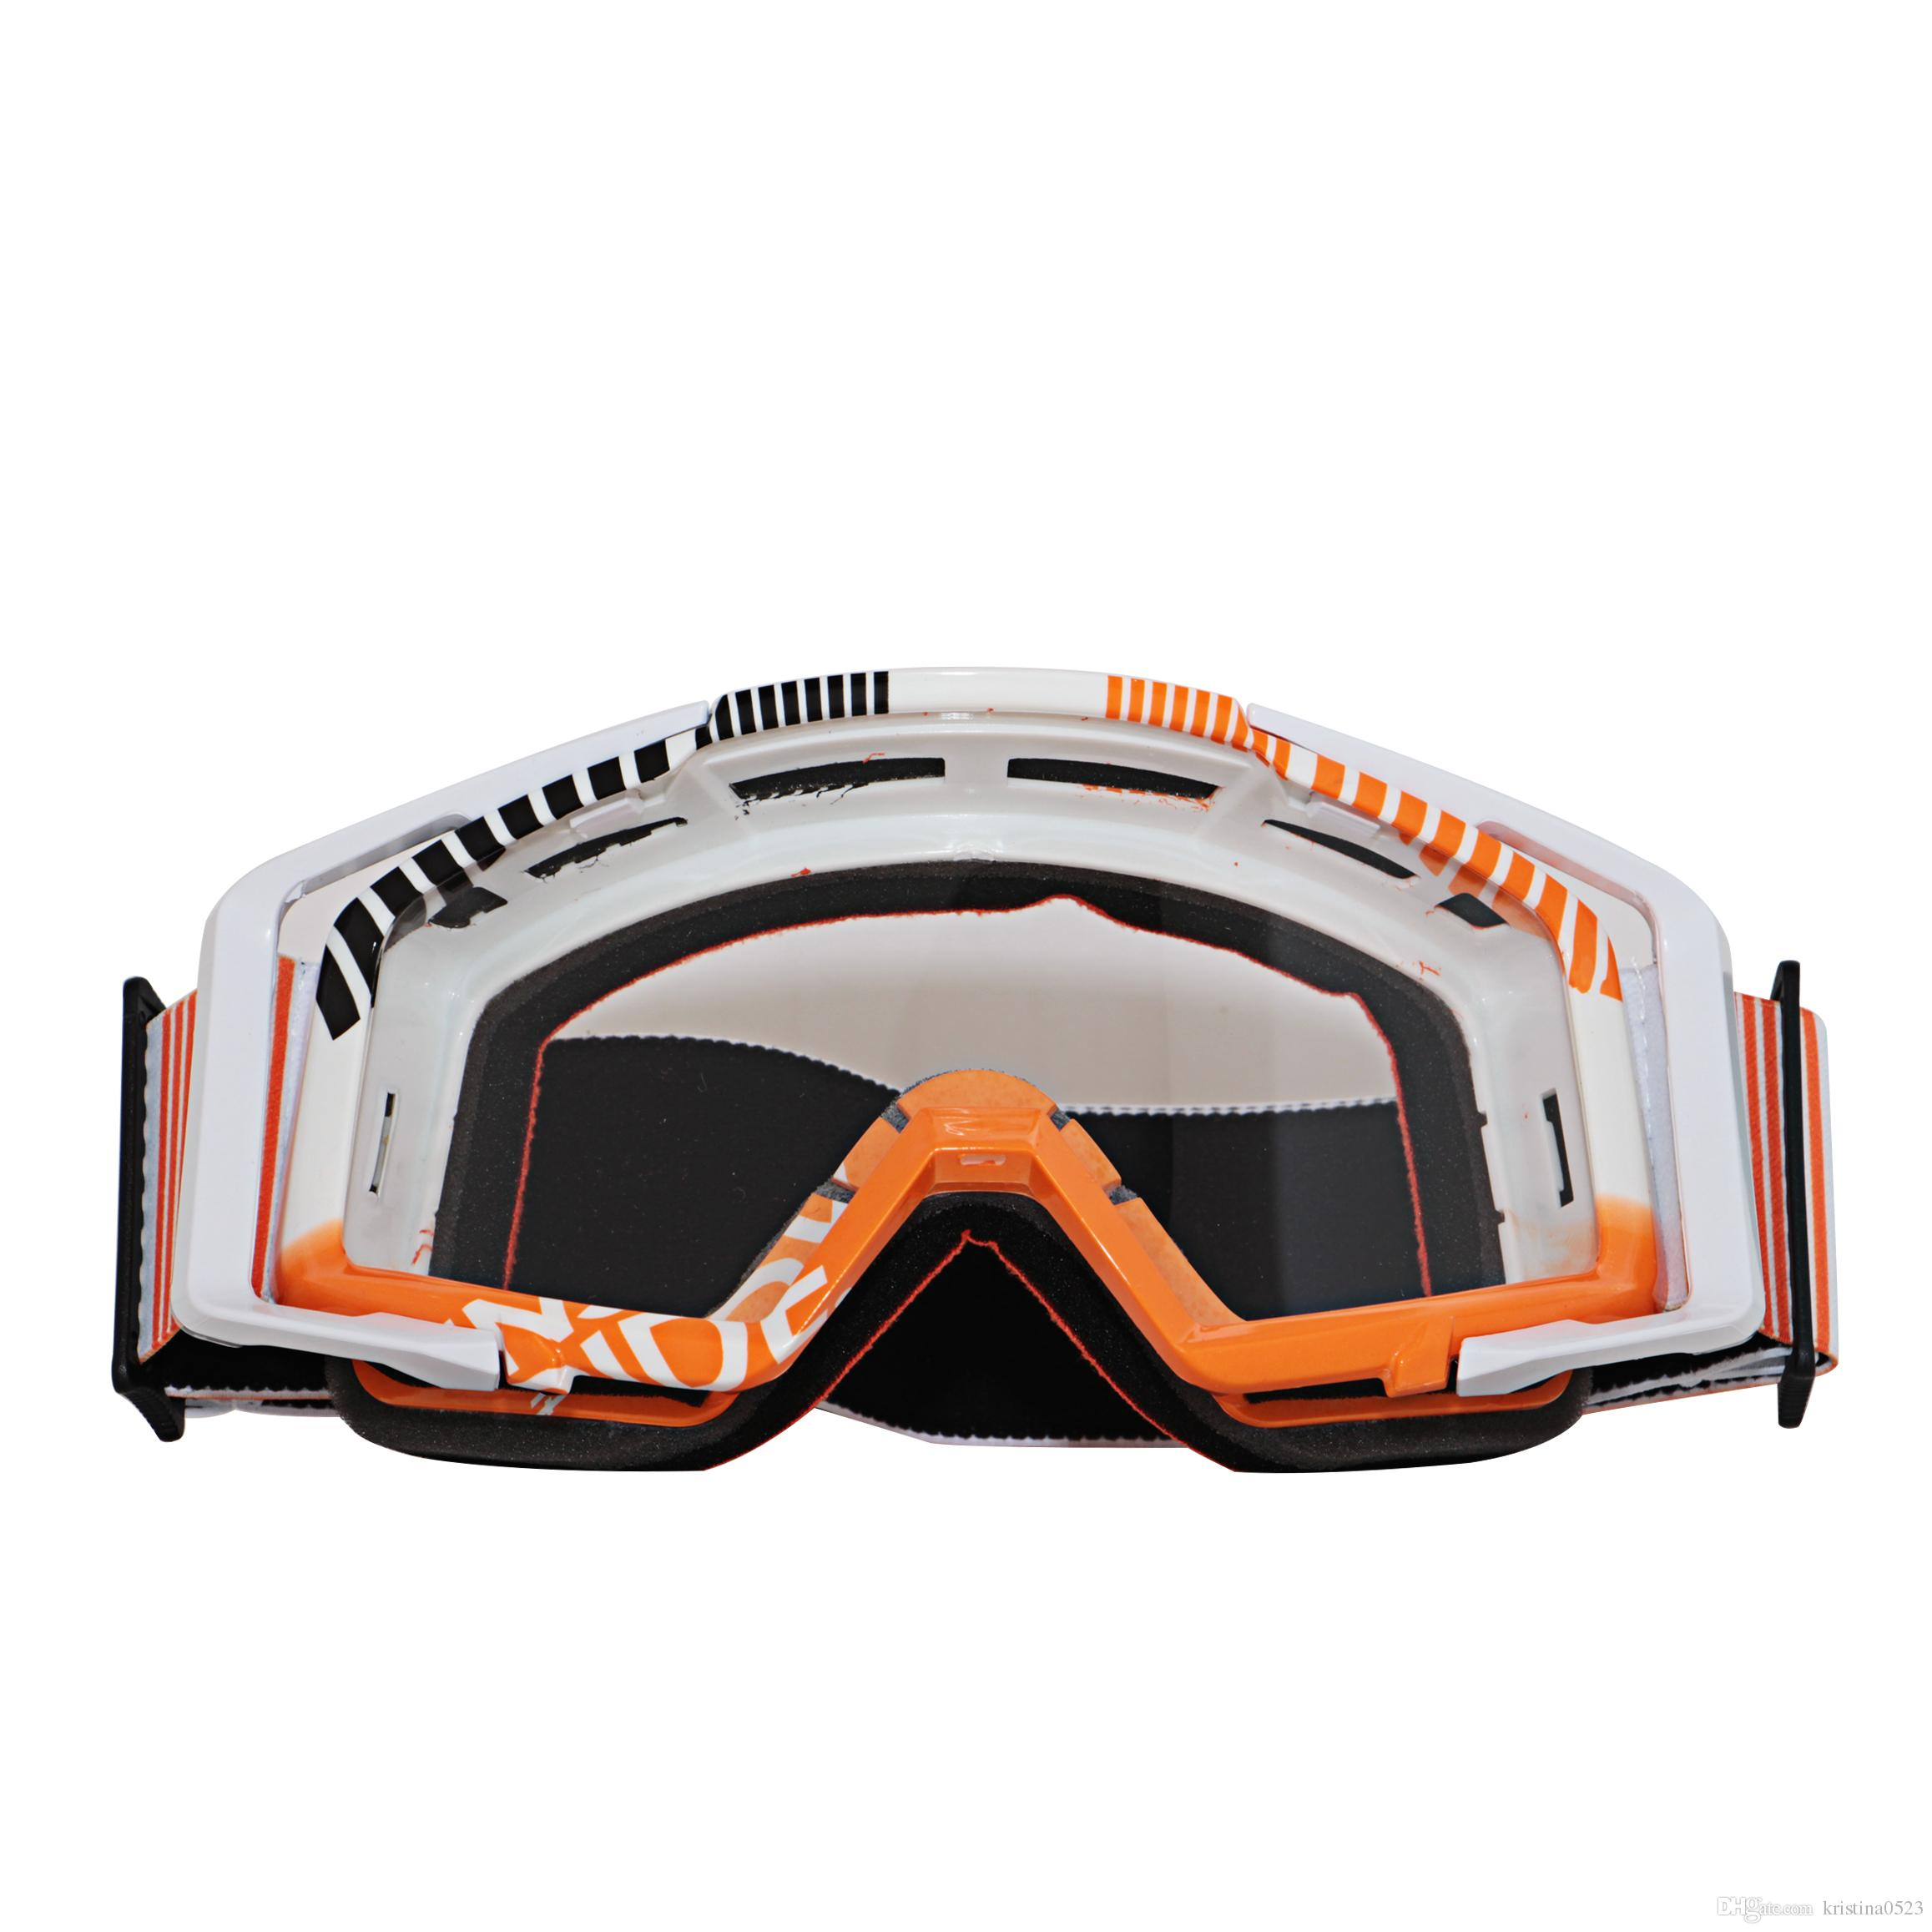 Moto Motocross Goggles Windproof Goggle For Helmet FITS OVER RX GLASSES Eyewear